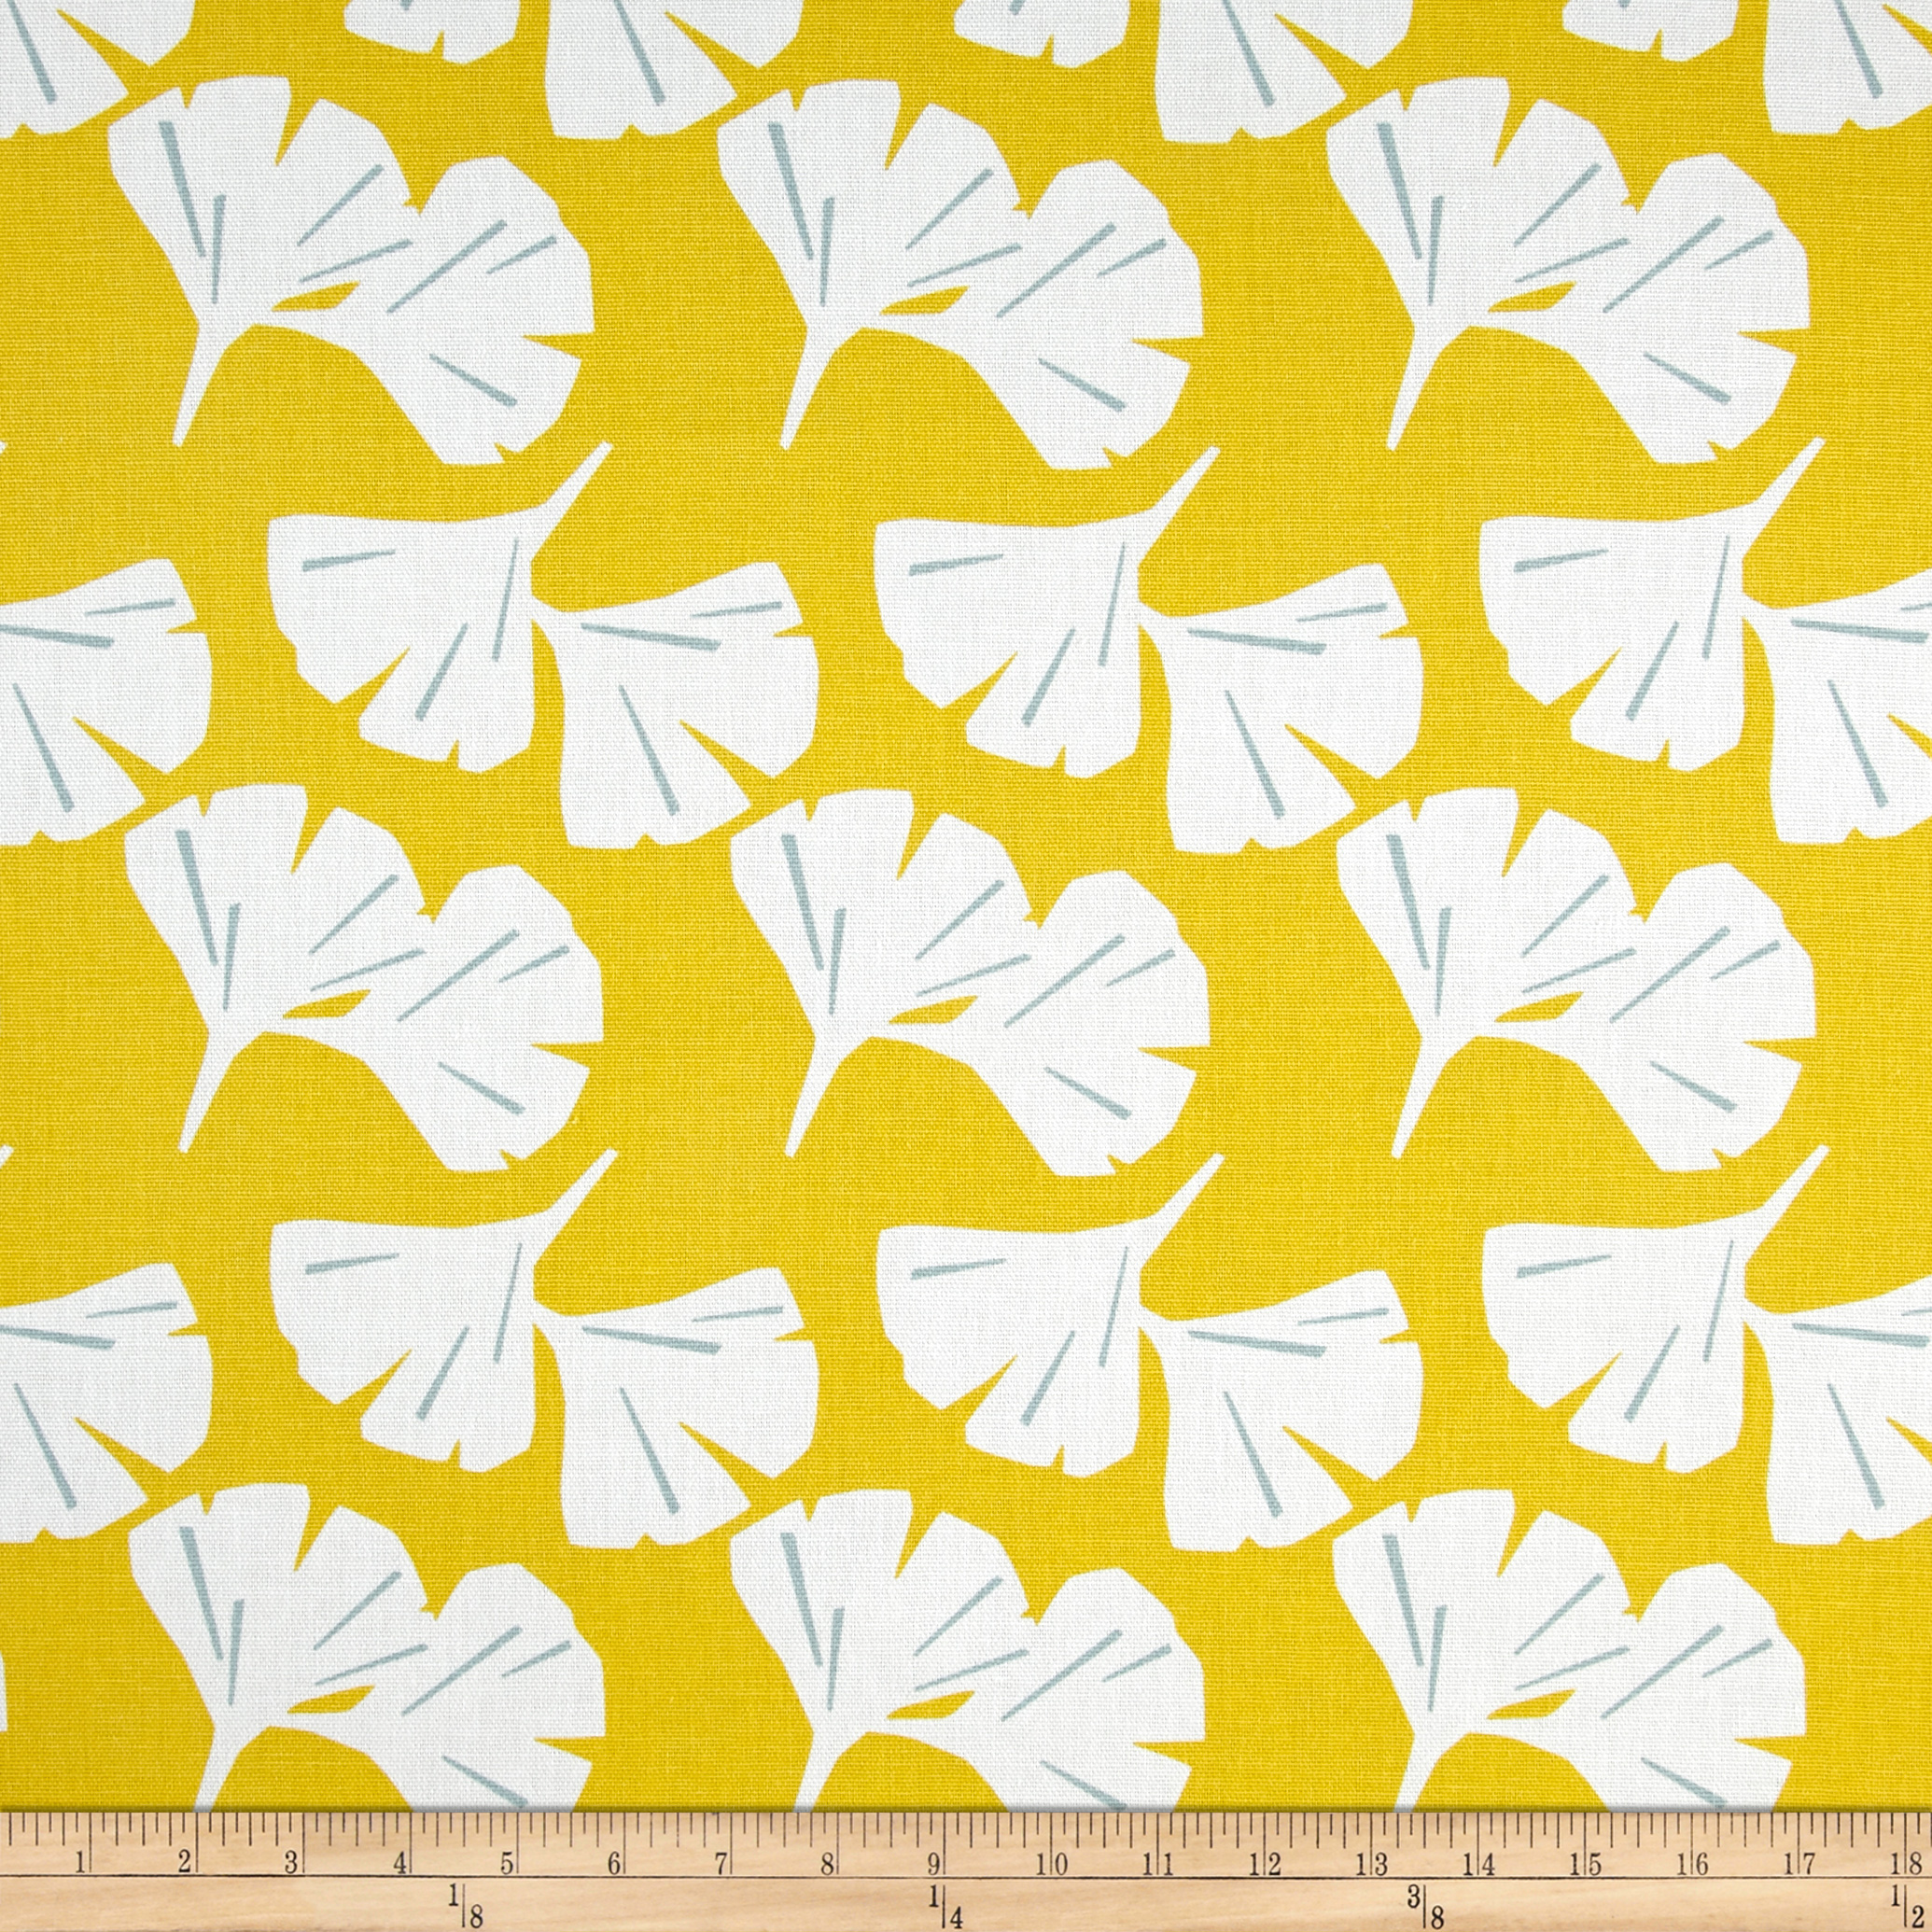 Premier Prints Ginko Mimosa Fabric by Premier in USA